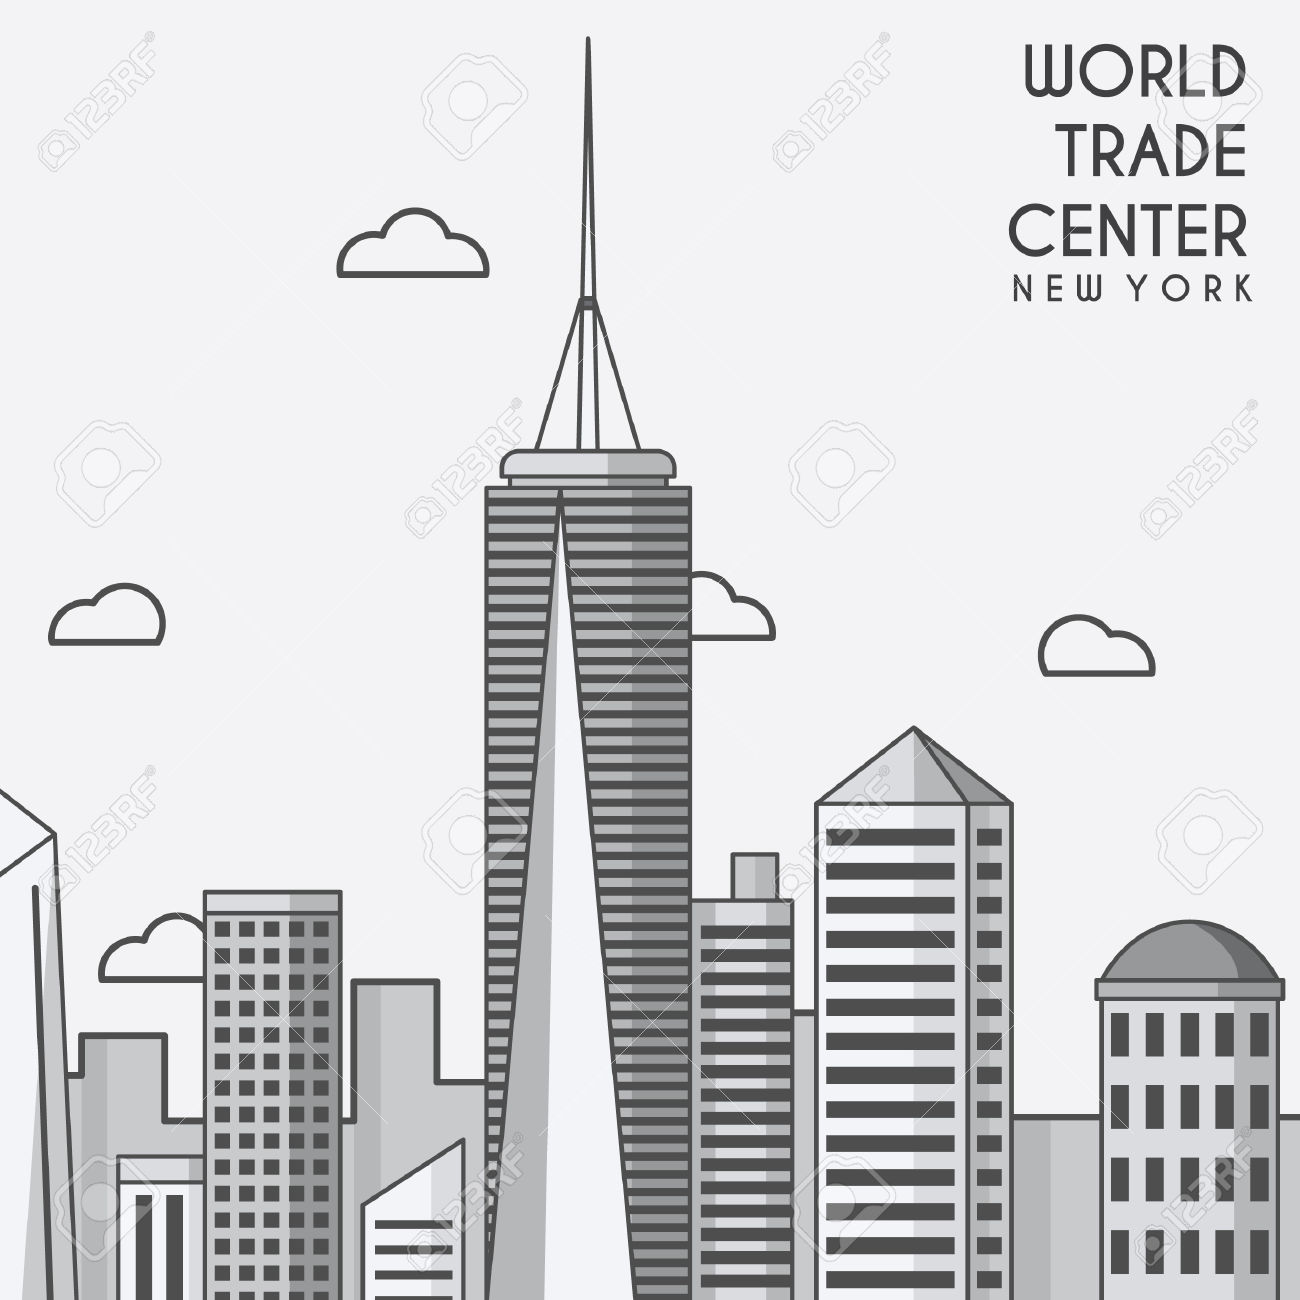 World trade center clipart.